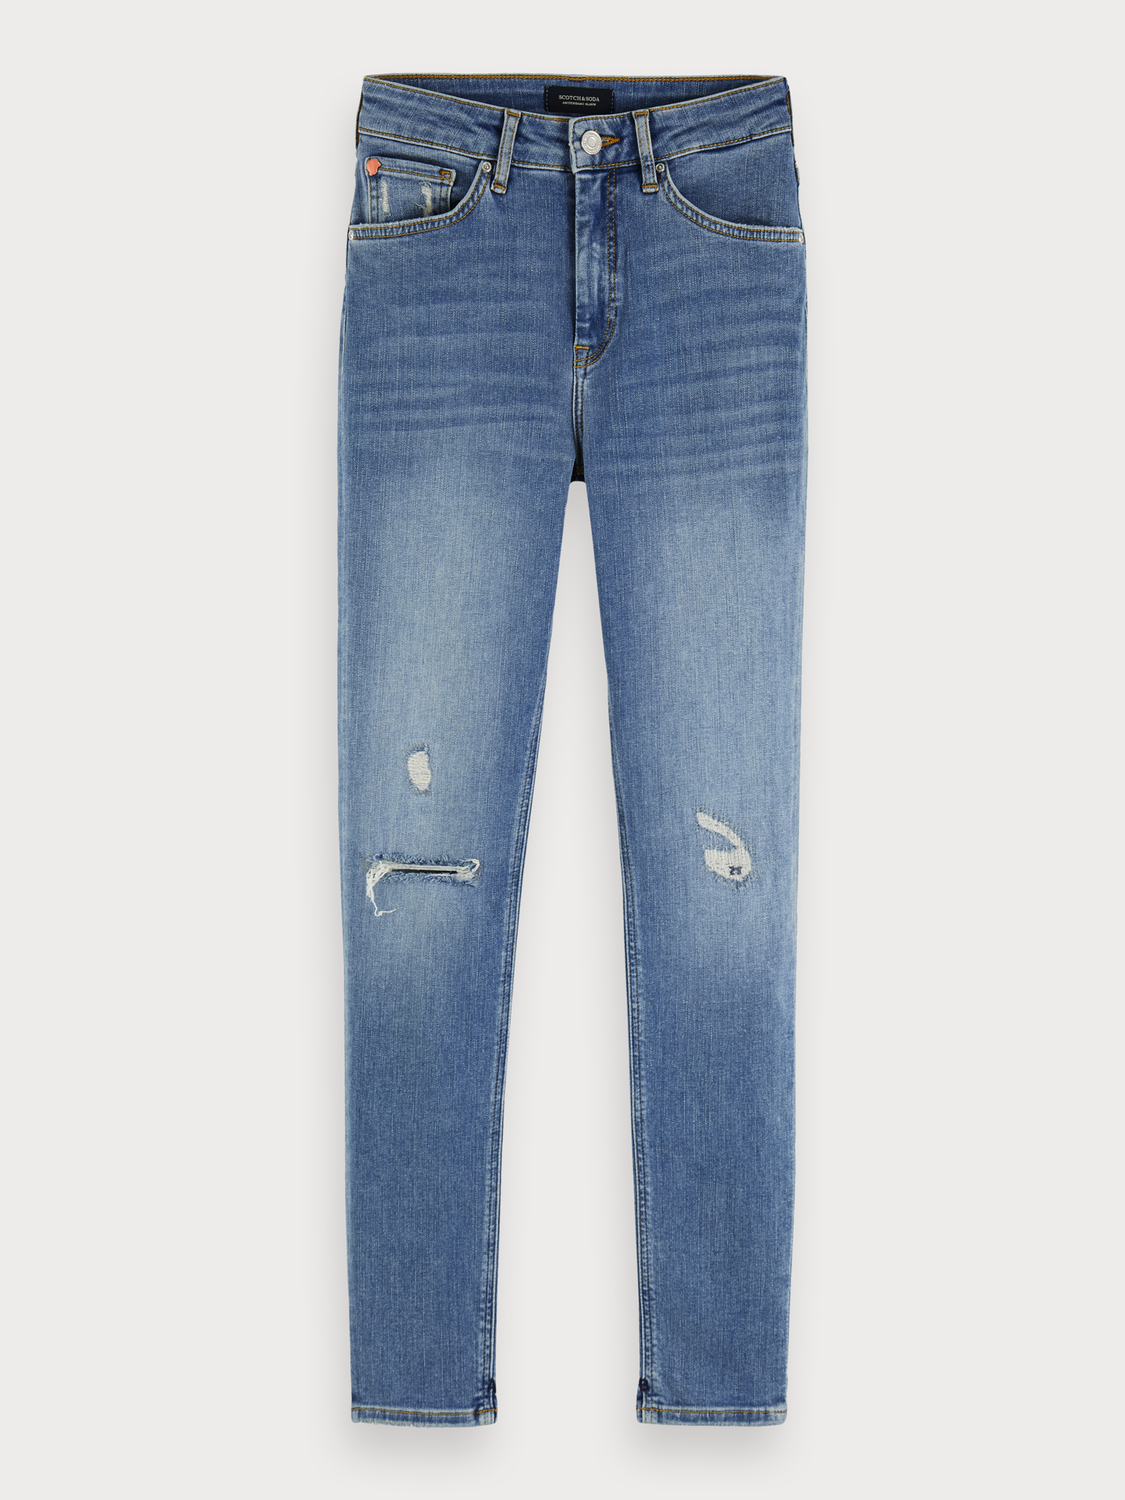 Donna Haut - Underground Blue | High rise skinny fit